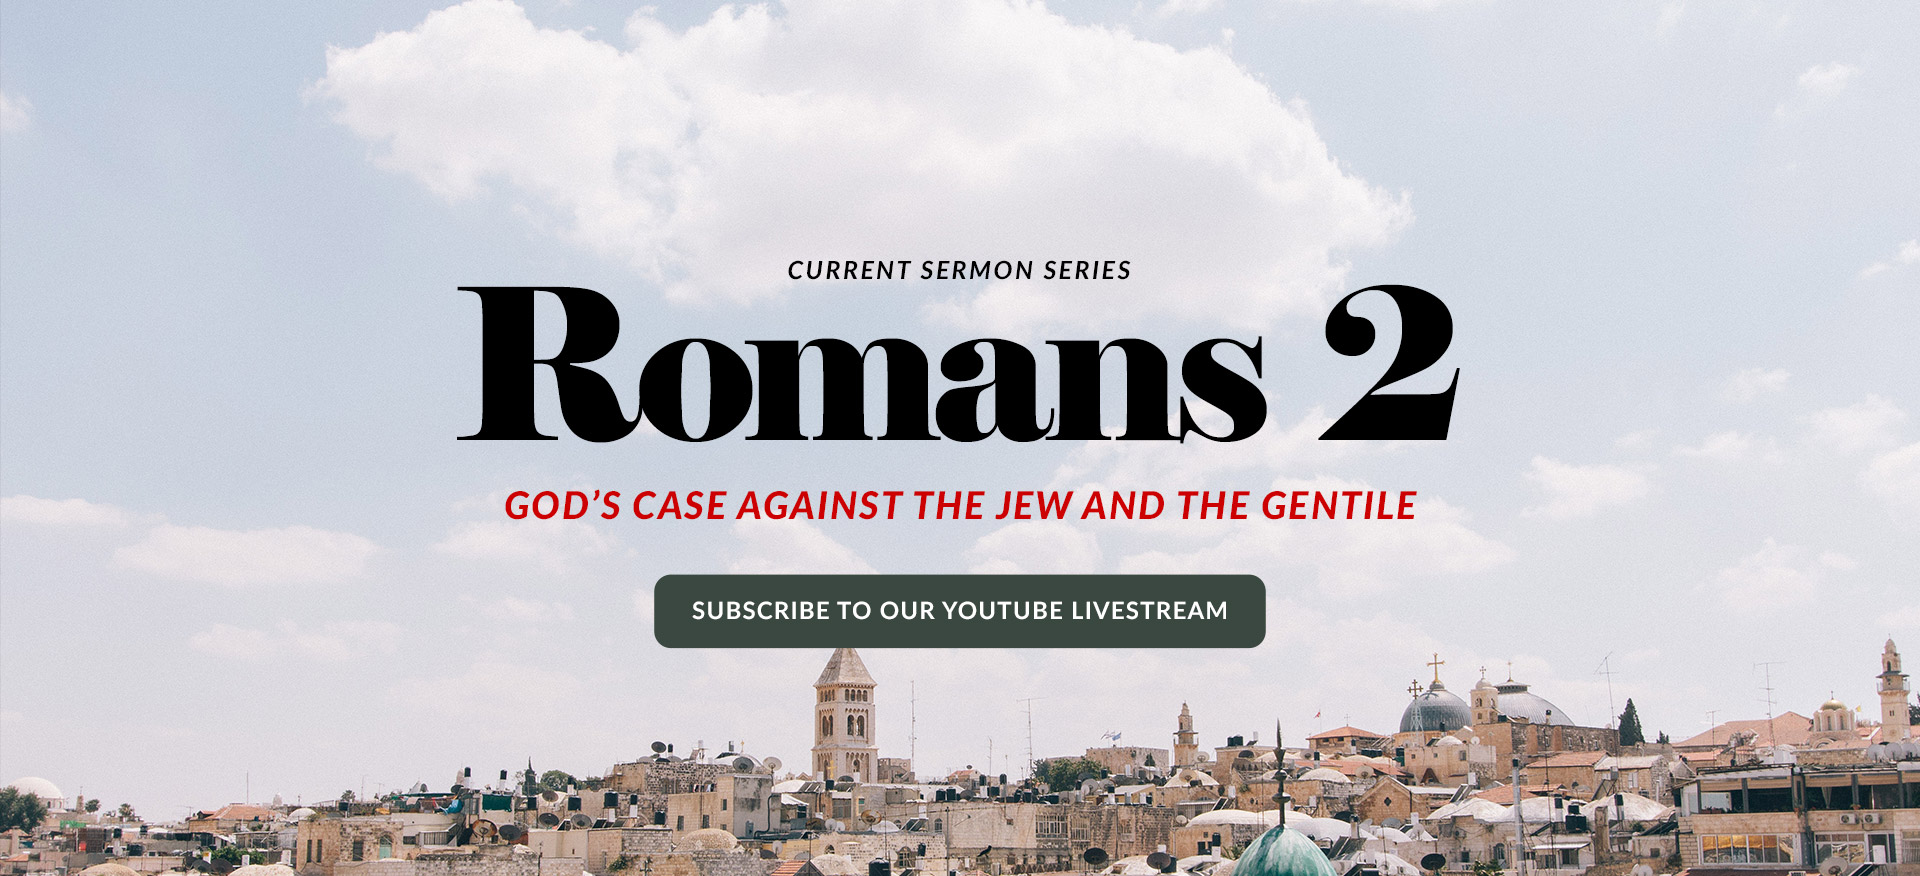 Current Sermon Series - Romans 2 - Subscribe to our YouTube Livestream